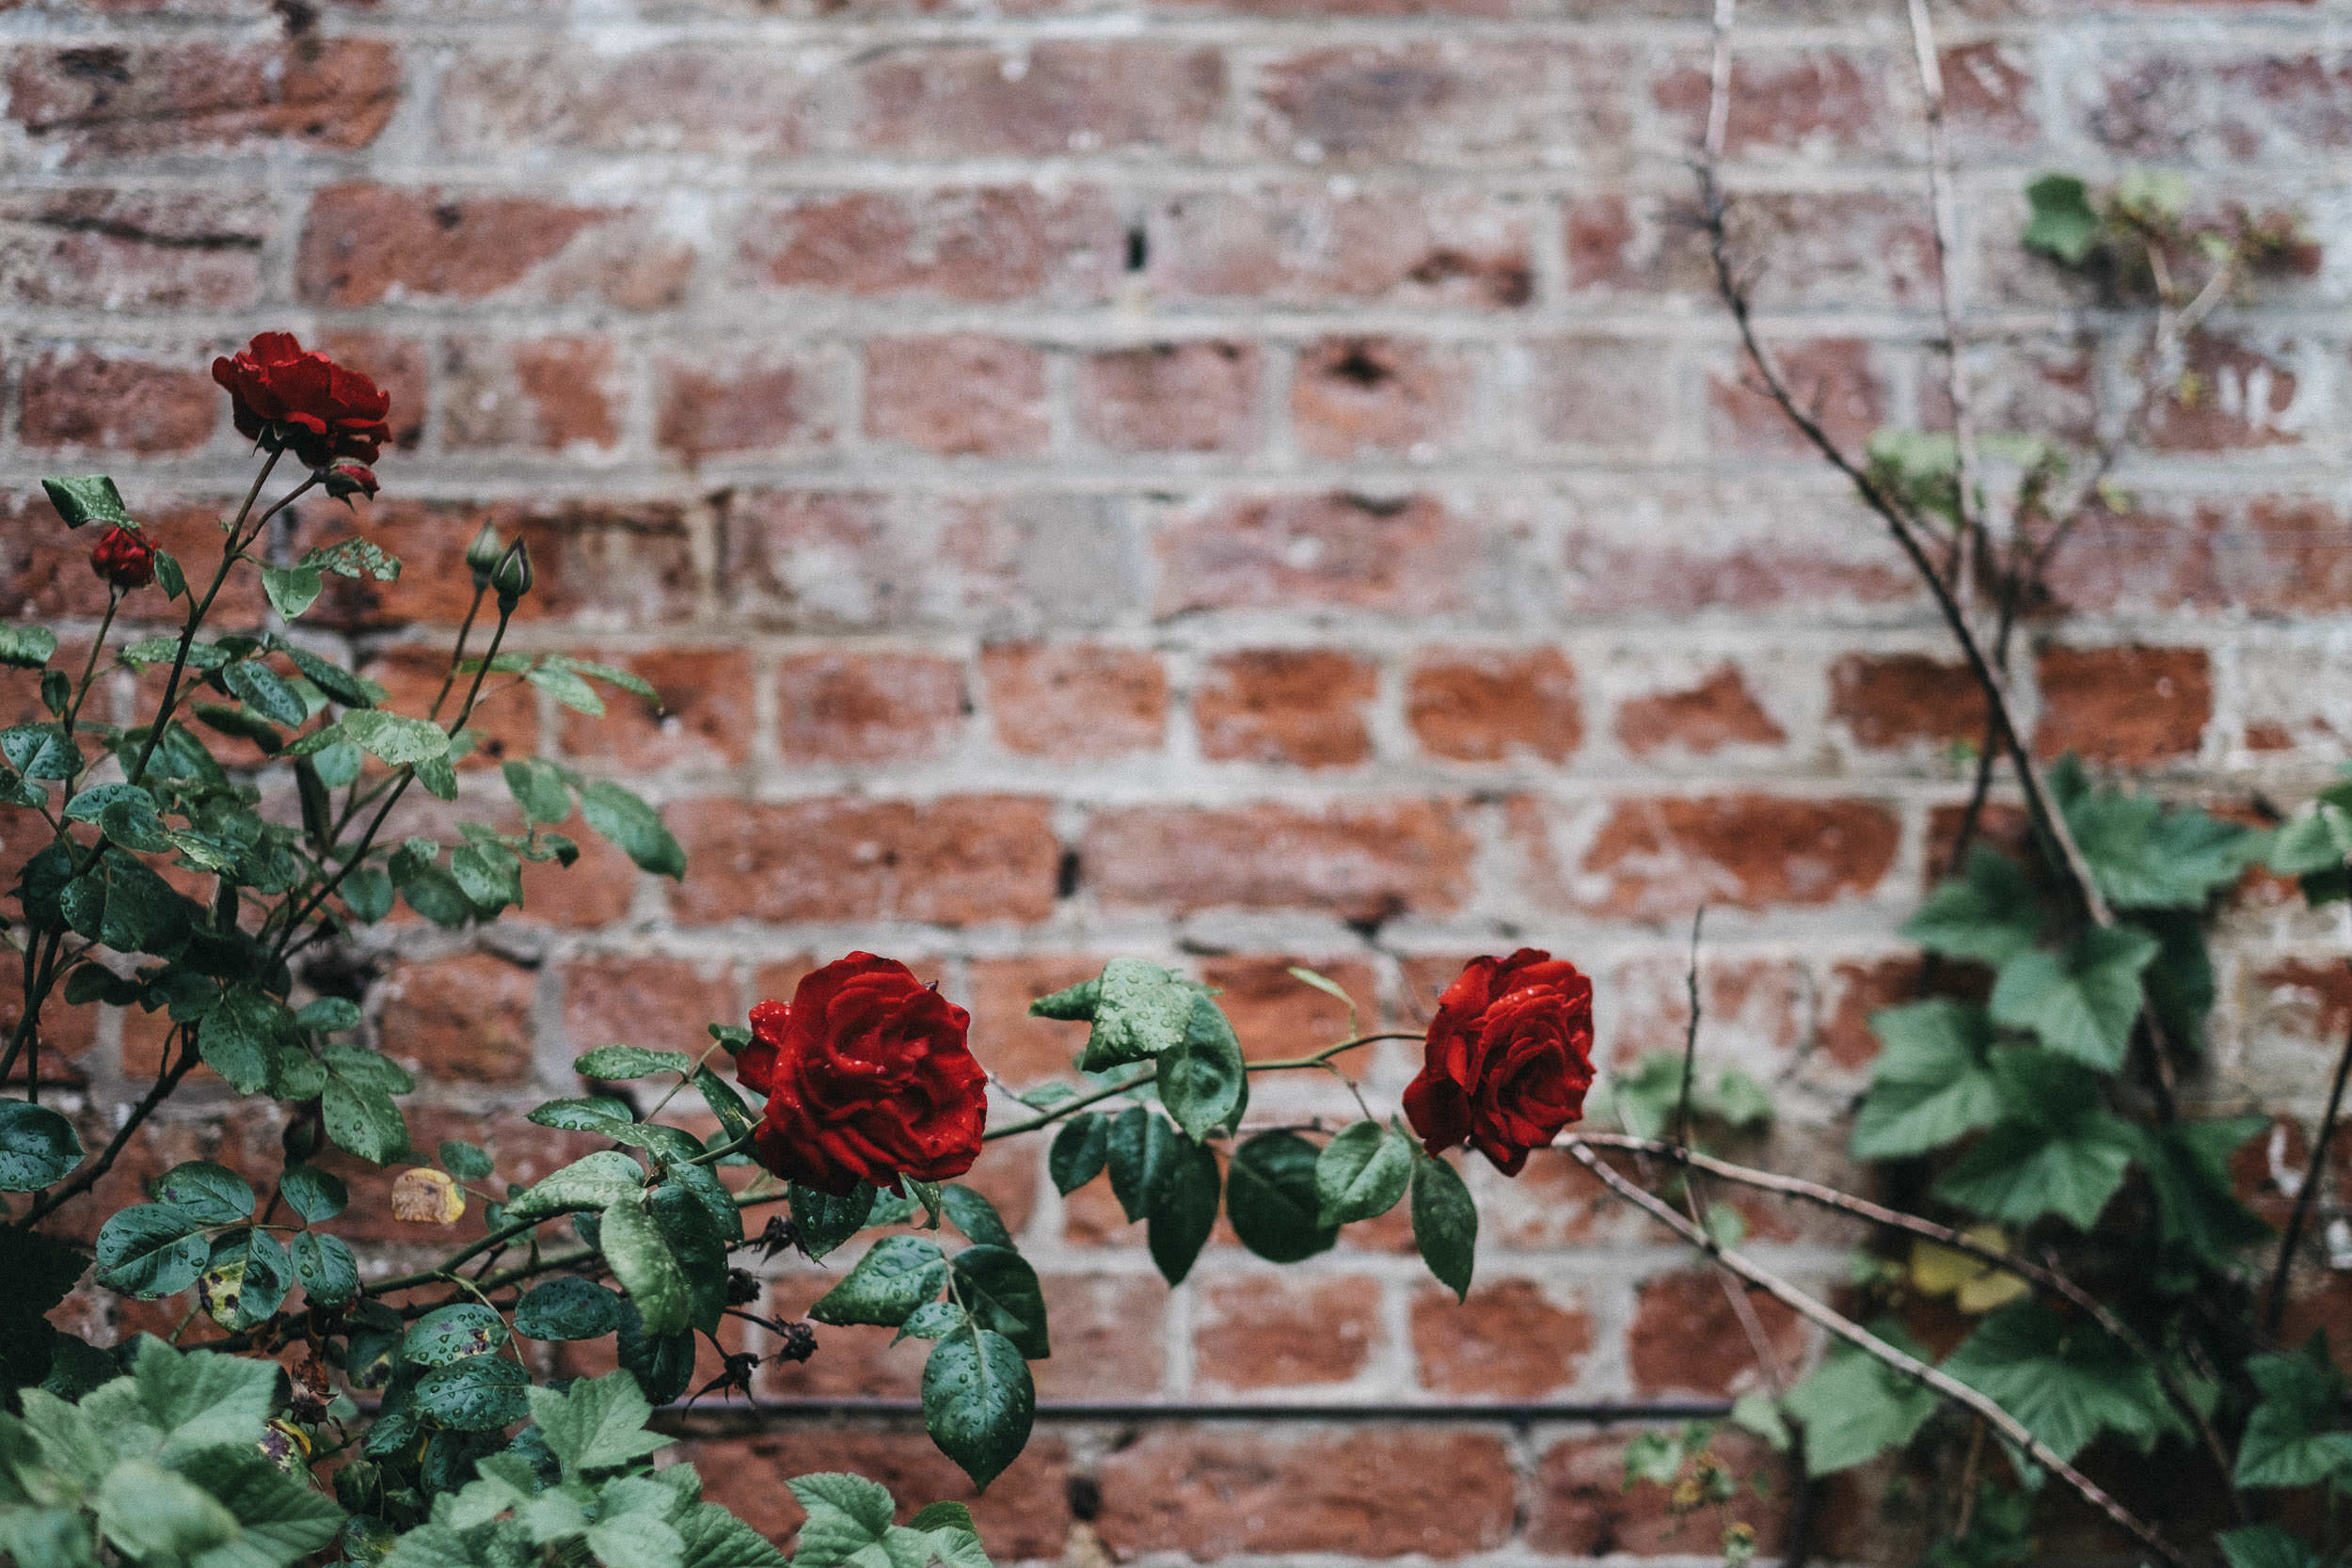 Roses dripping with rain with brick wall behind